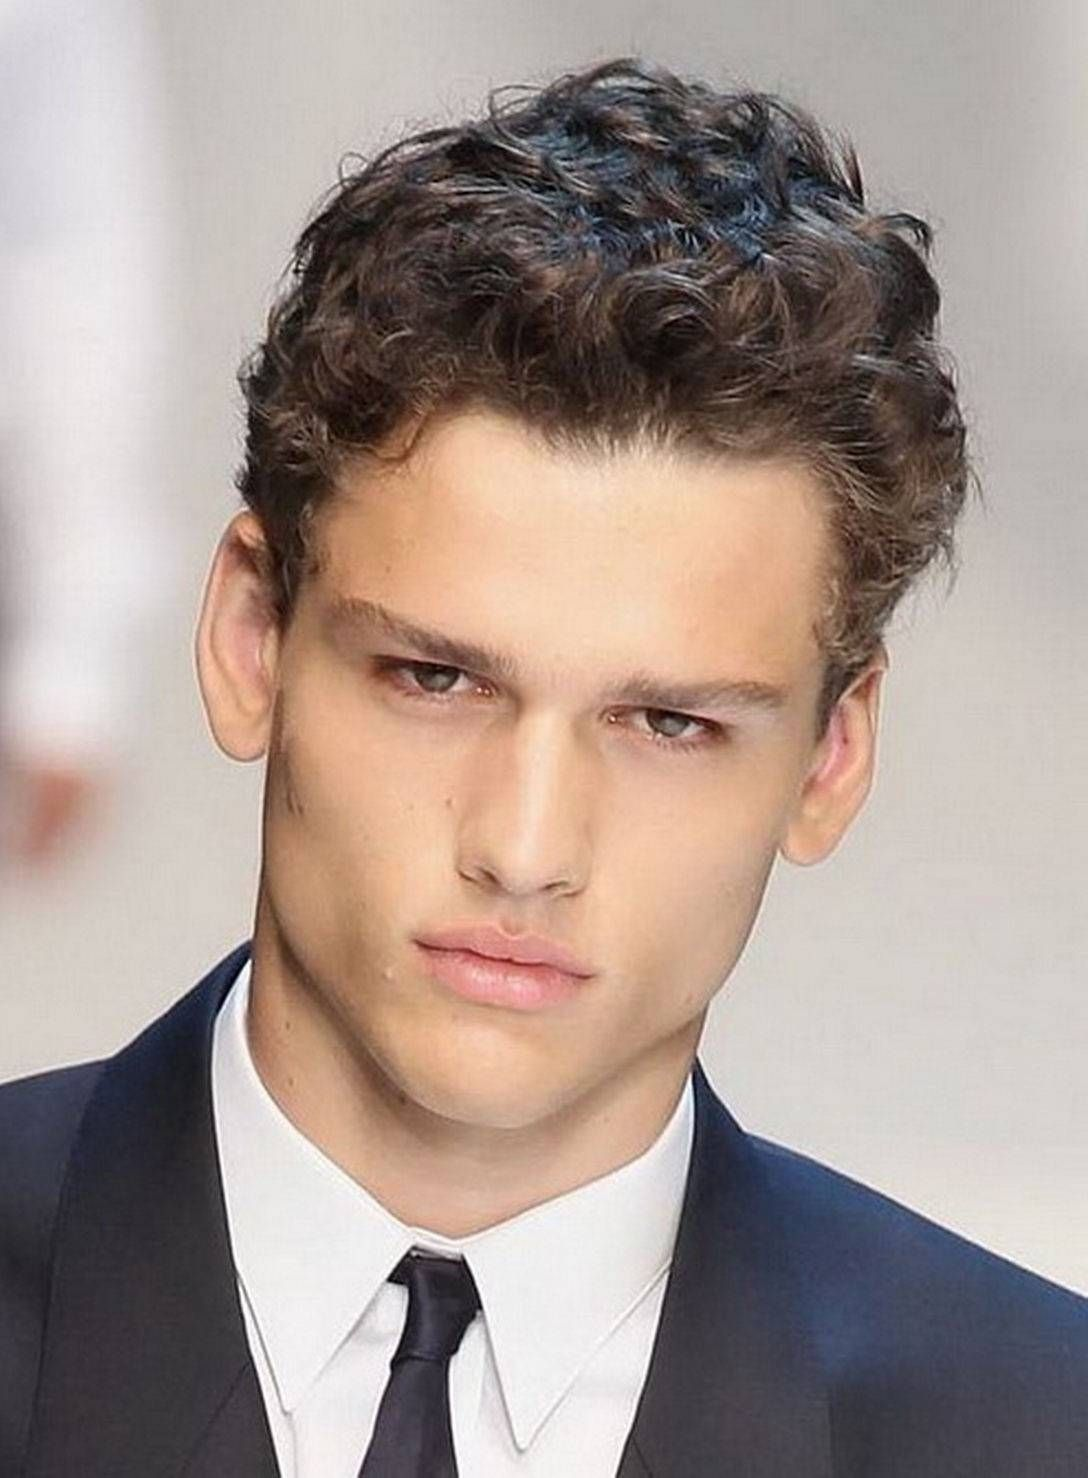 How To Style Thick Curly Hair For Guys Curly Hair Men Men S Curly Hairstyles Boys Haircuts Curly Hair